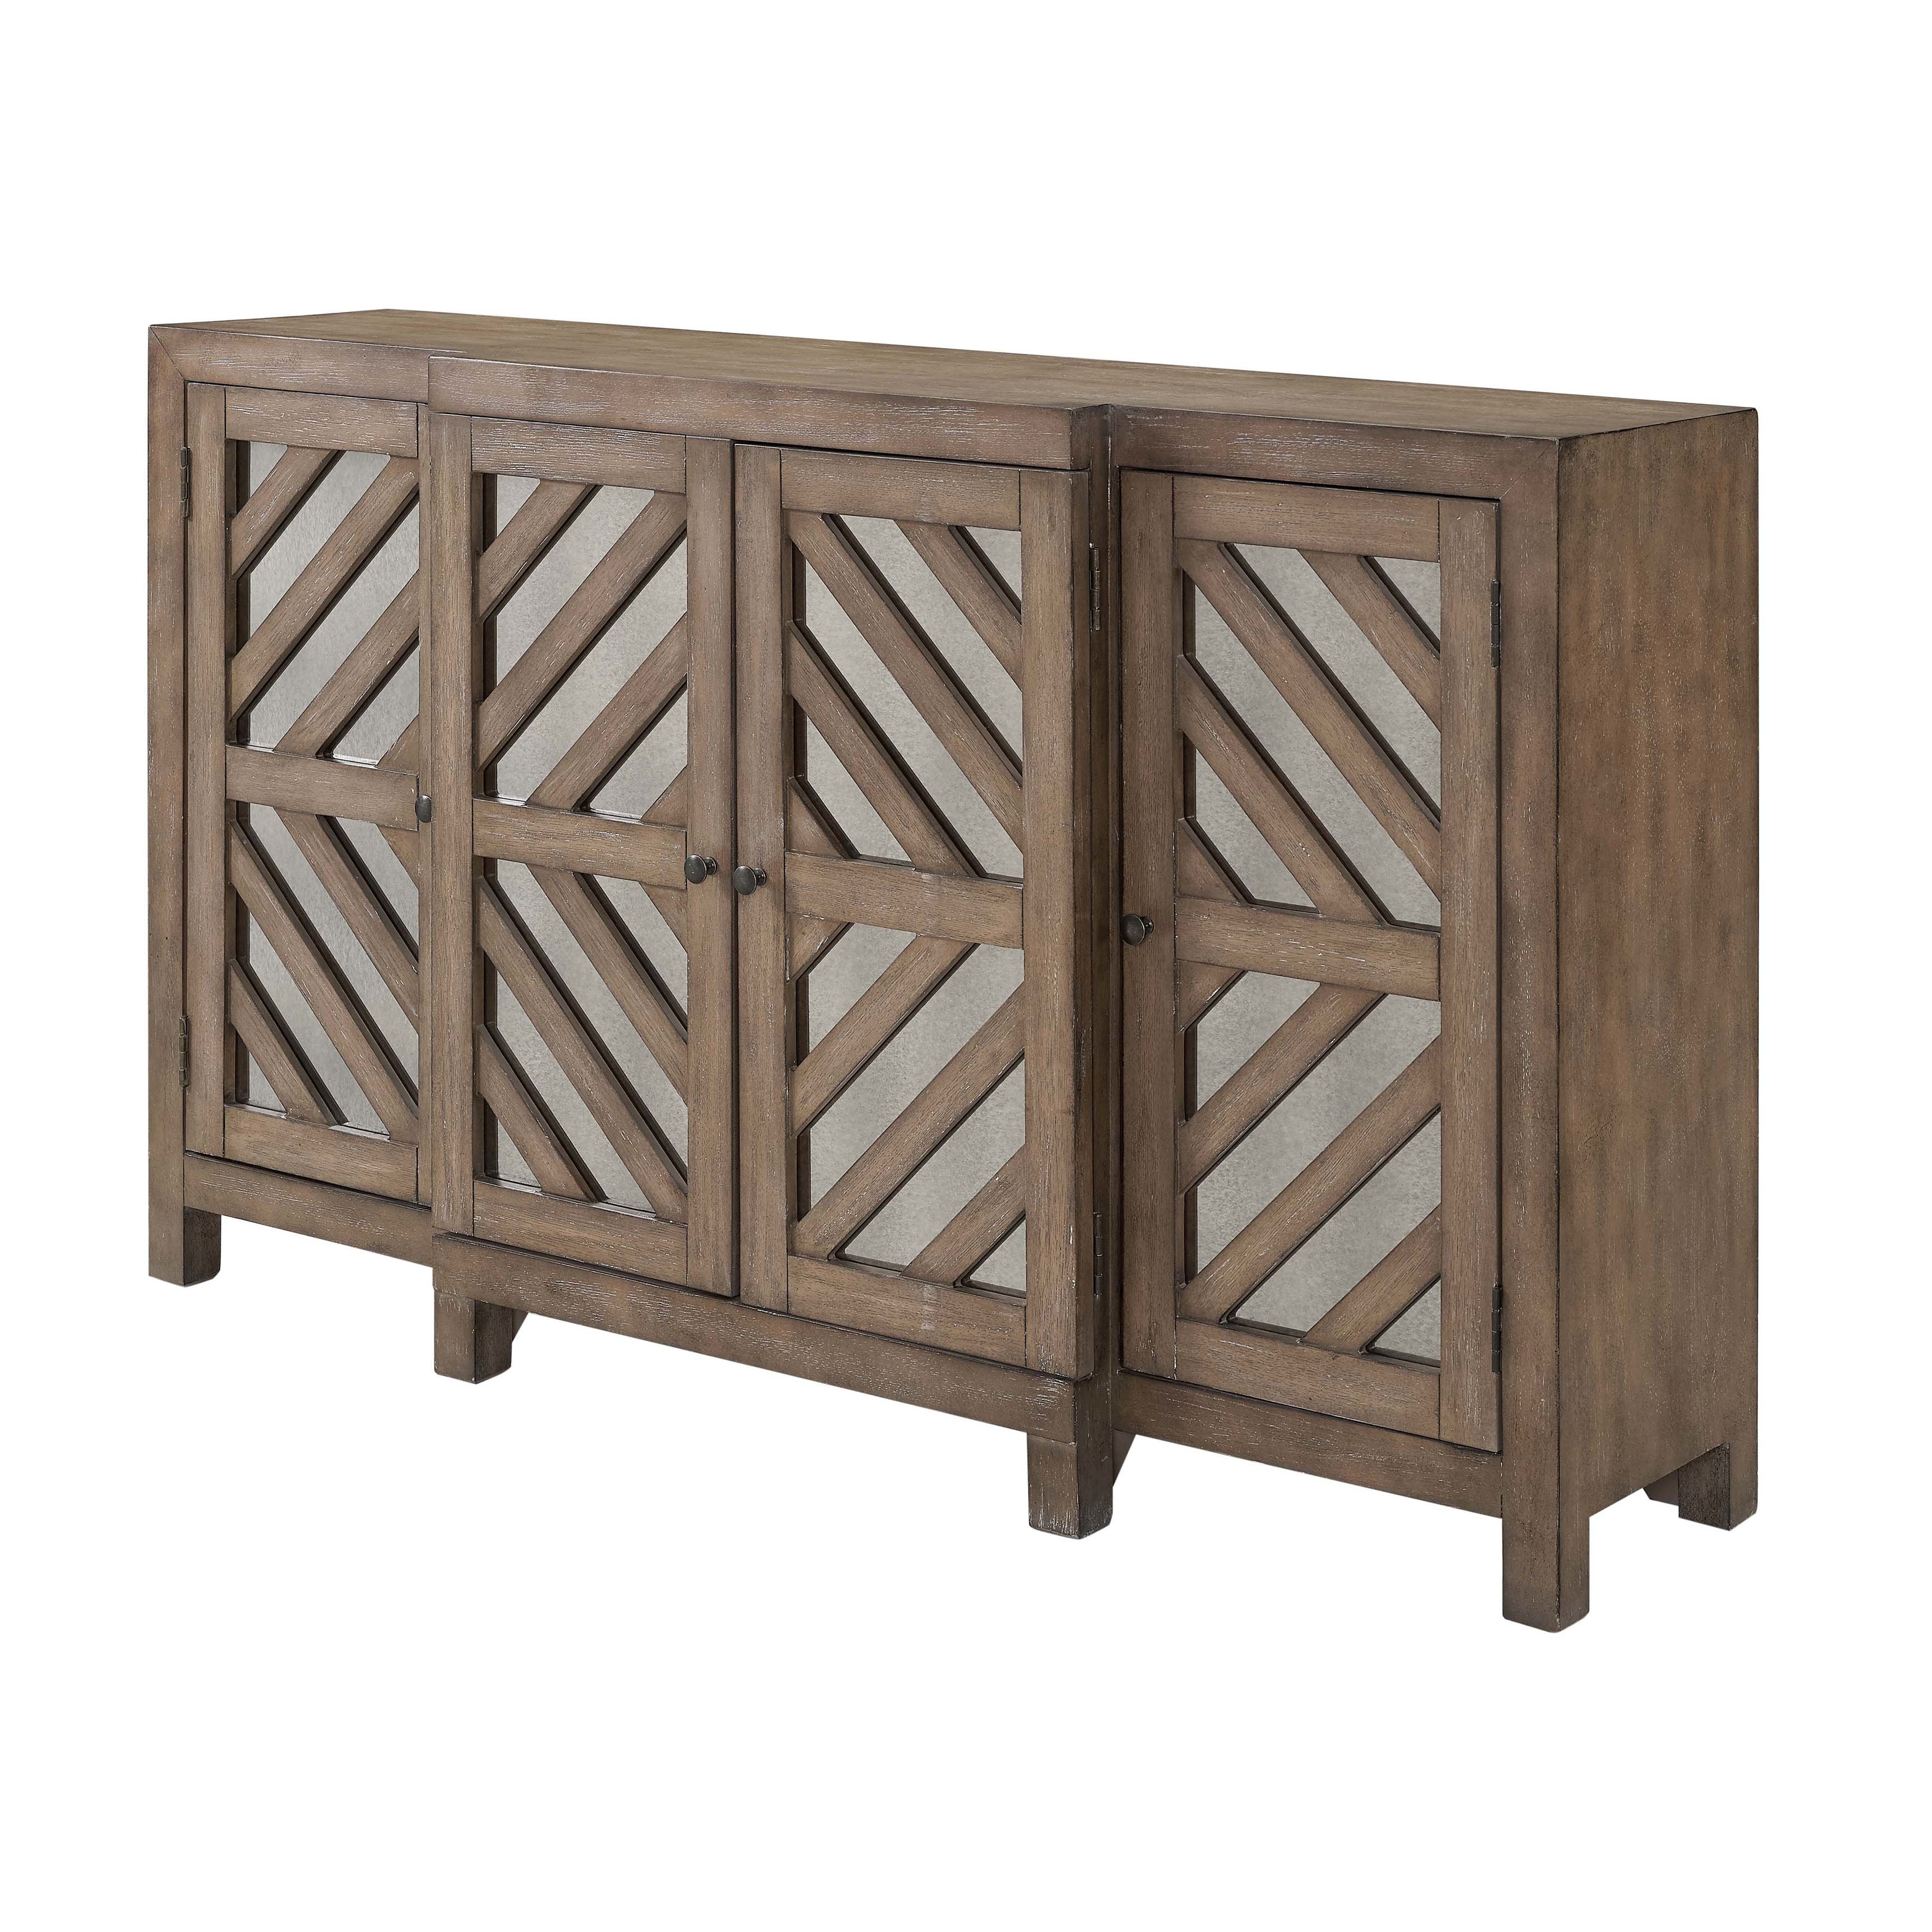 Lowrey Credenza Throughout Stillwater Sideboards (View 13 of 20)